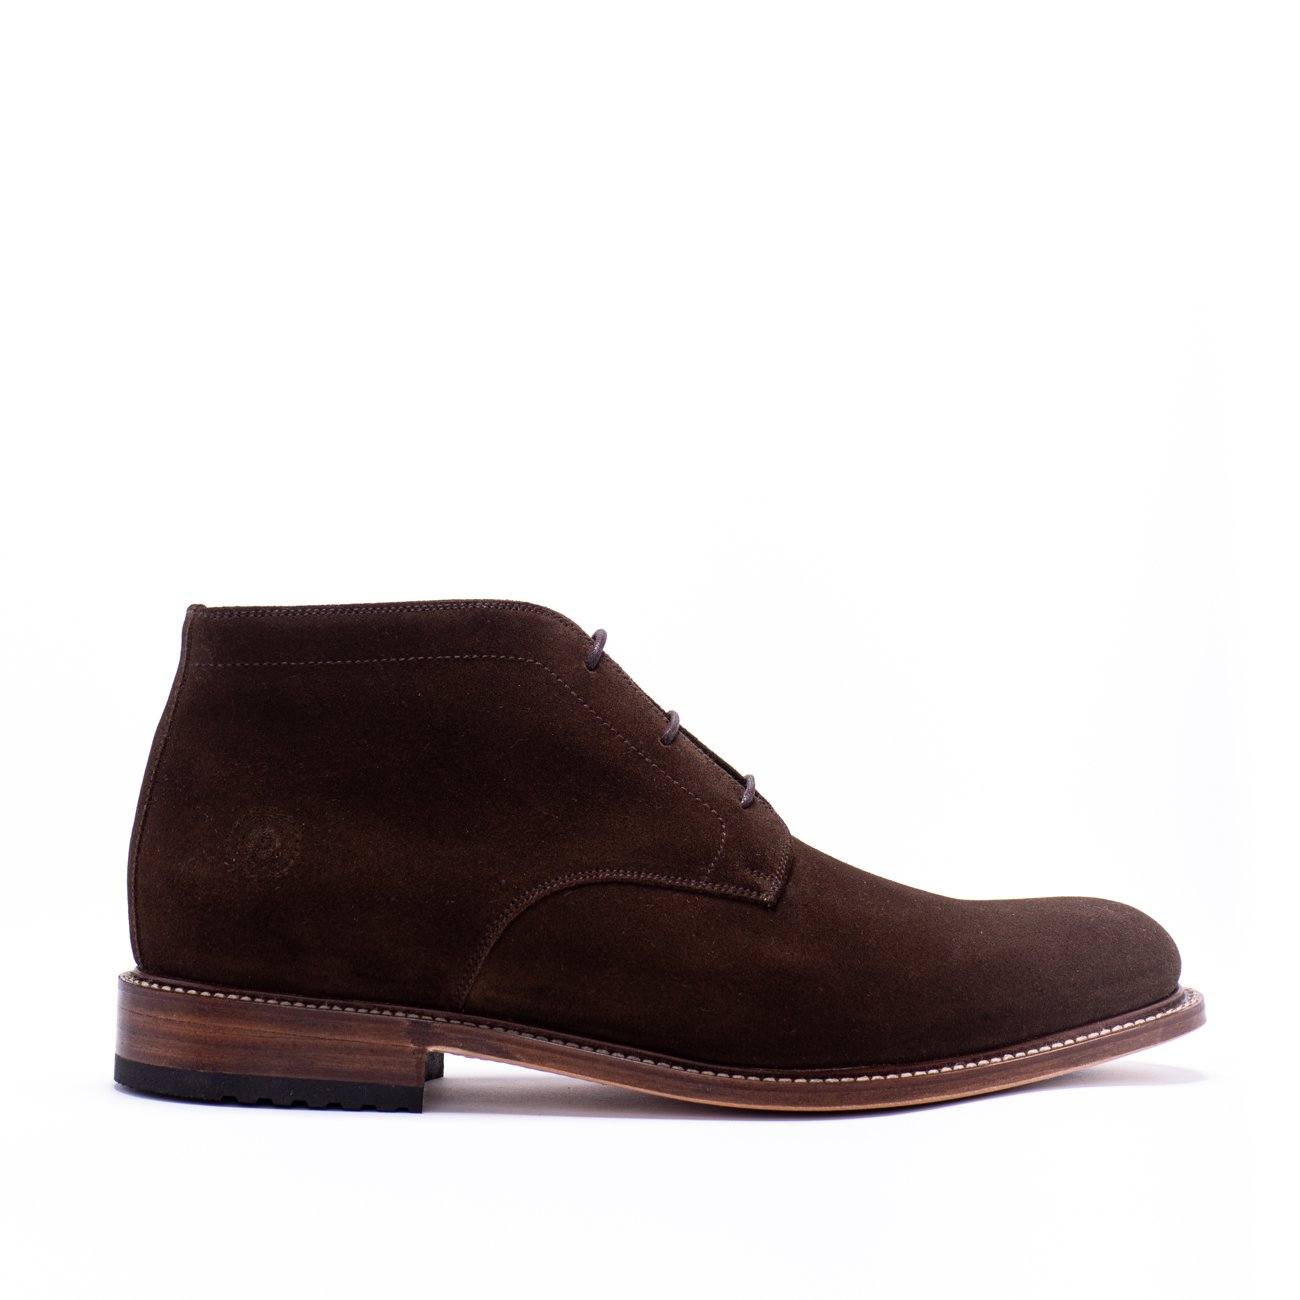 Boot - Redseed Chukka Dark Brown Suede